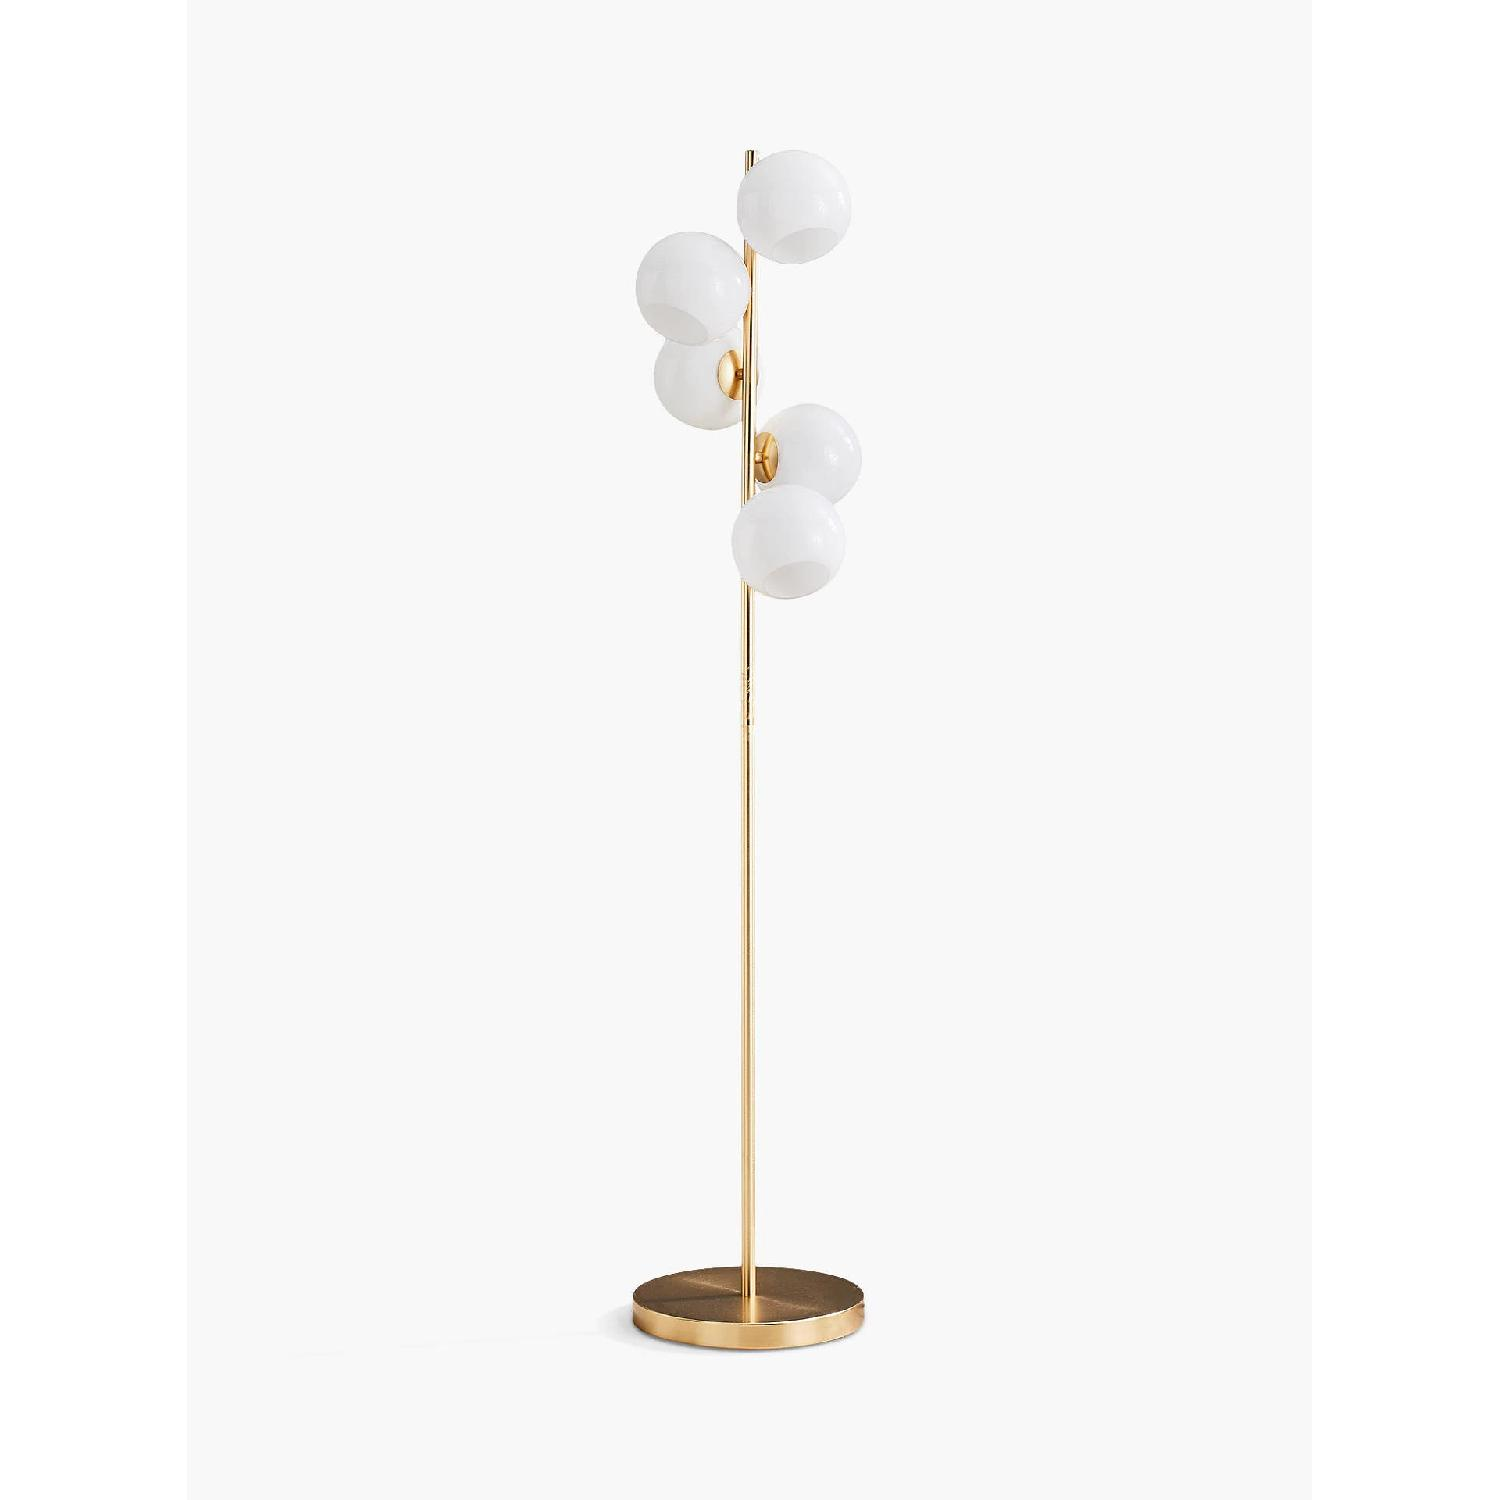 West Elm Staggered Glass Floor Lamp - image-0